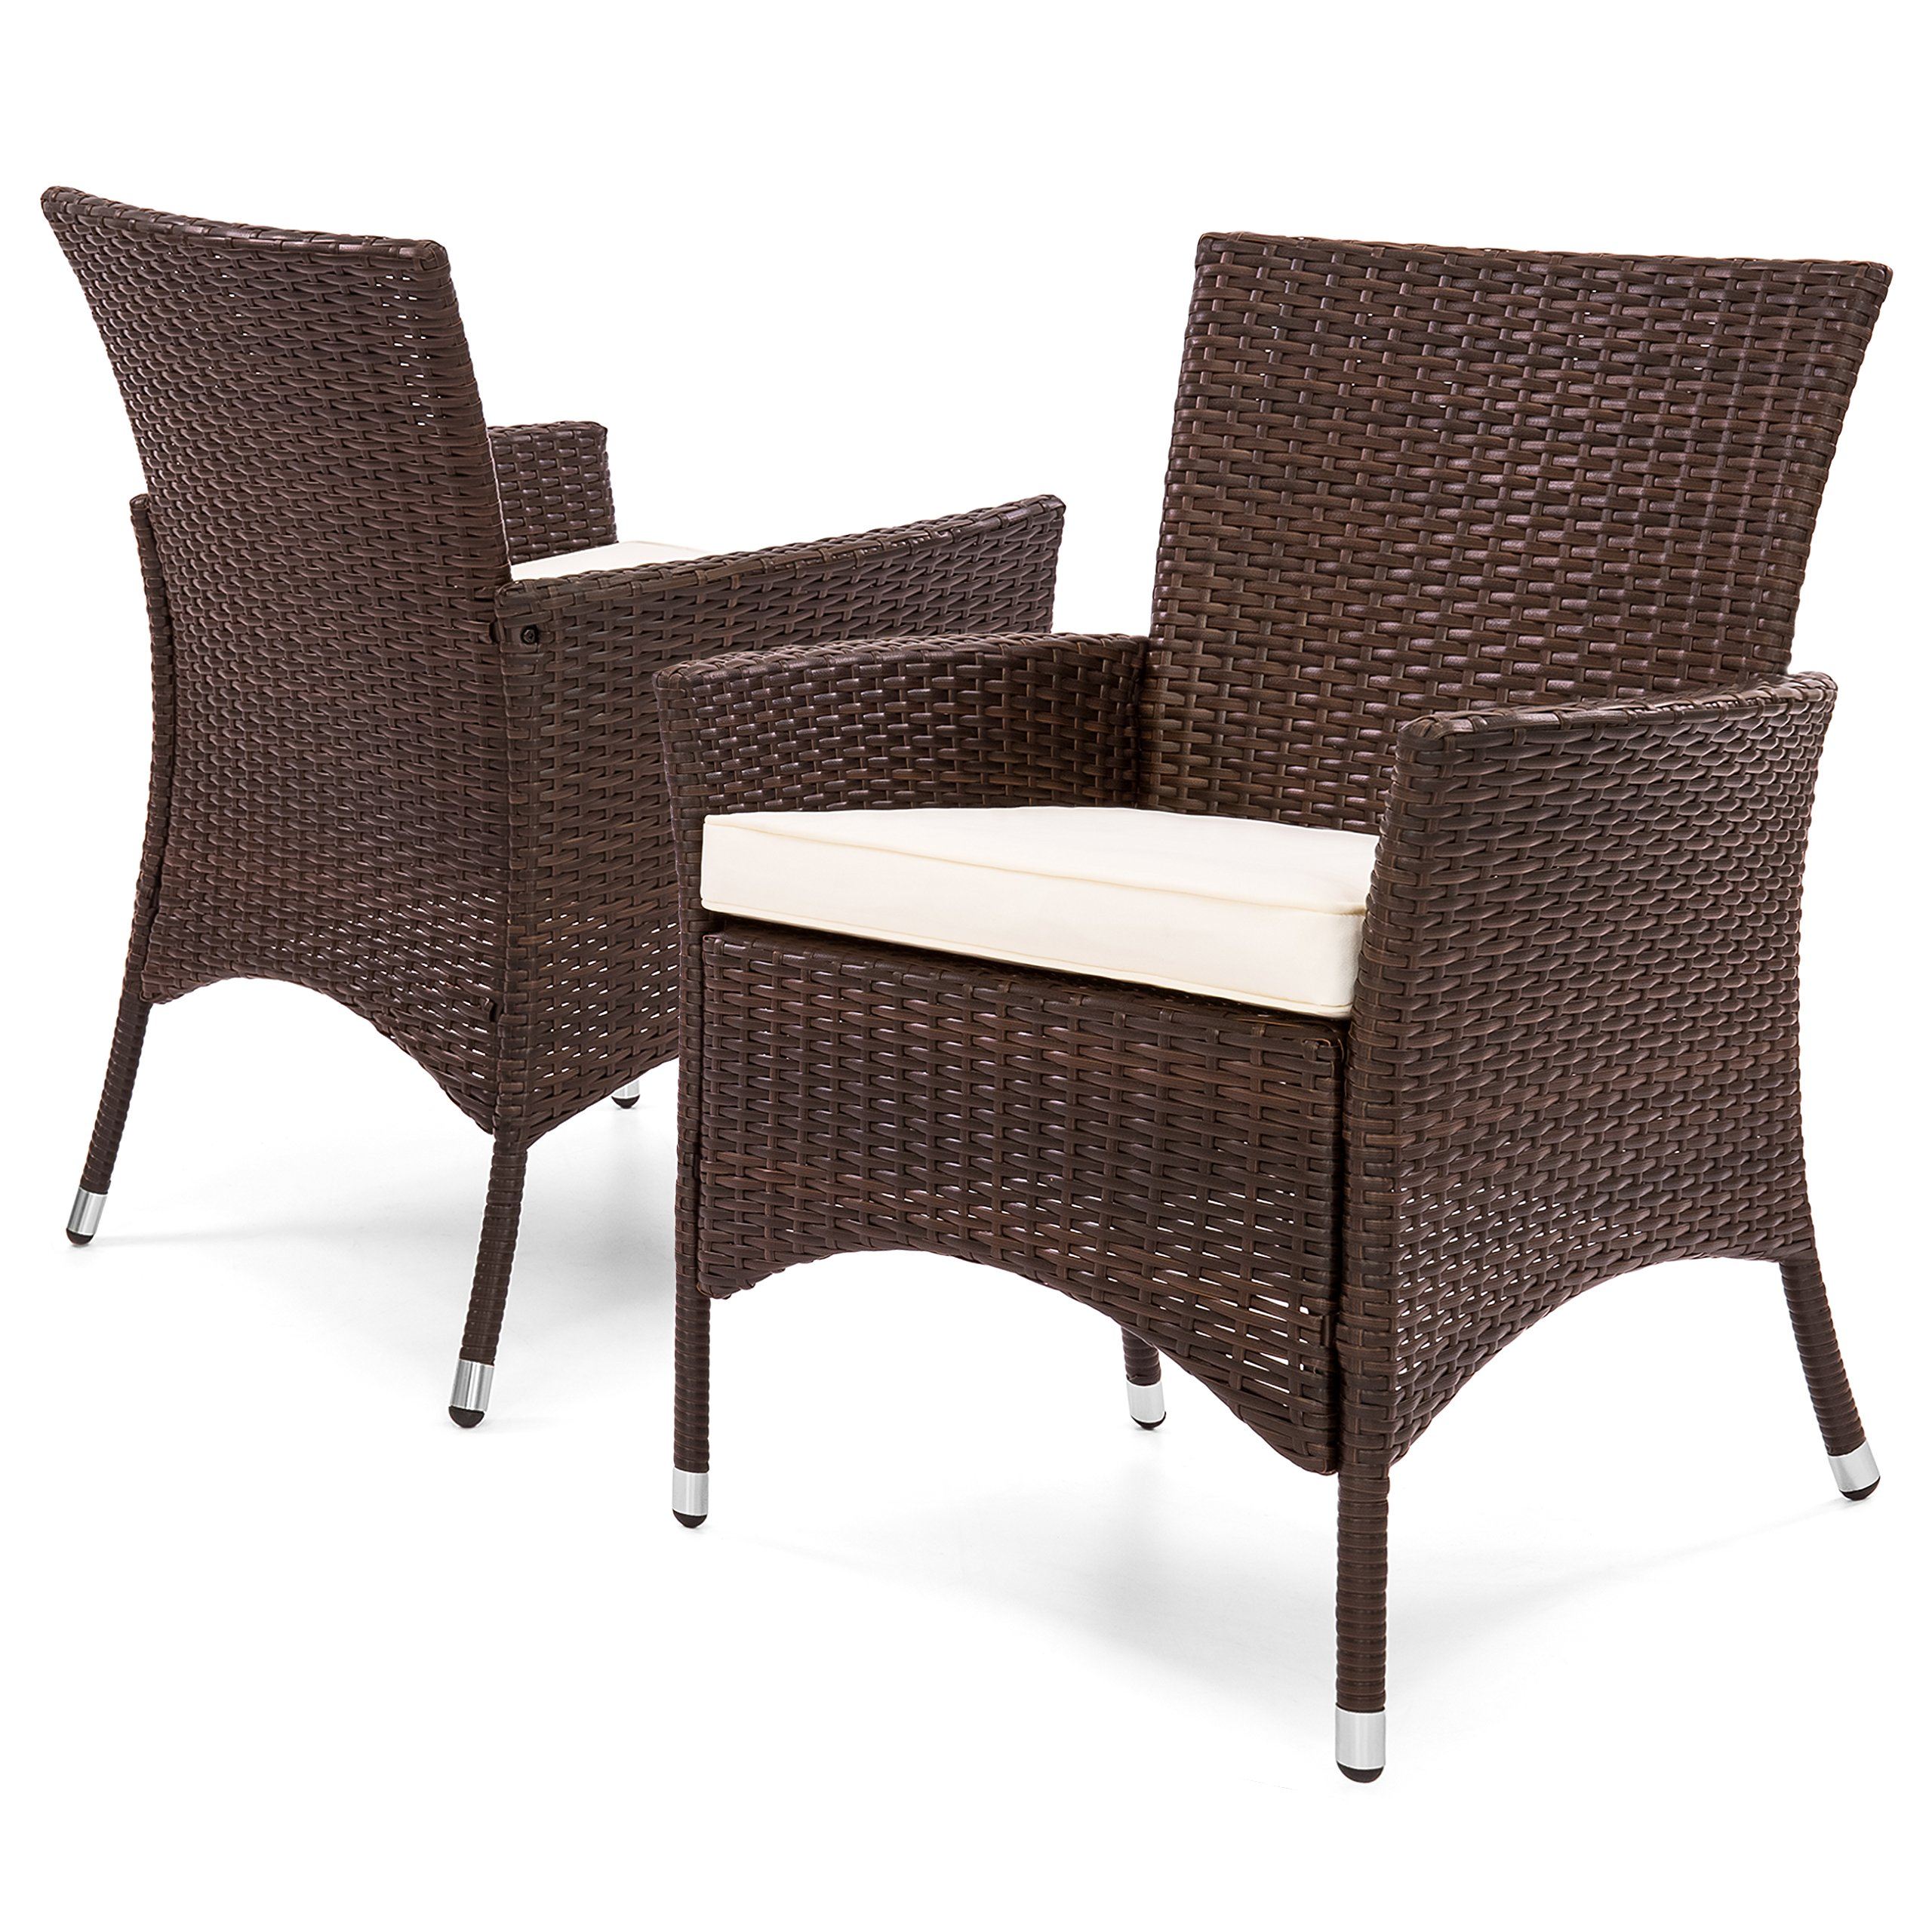 Best Choice Products Set of 2 Modern Contemporary Wicker Patio Dining Chairs for Backyard, Patio, Garden with Water-Resistant Cushions, Brown by Best Choice Products